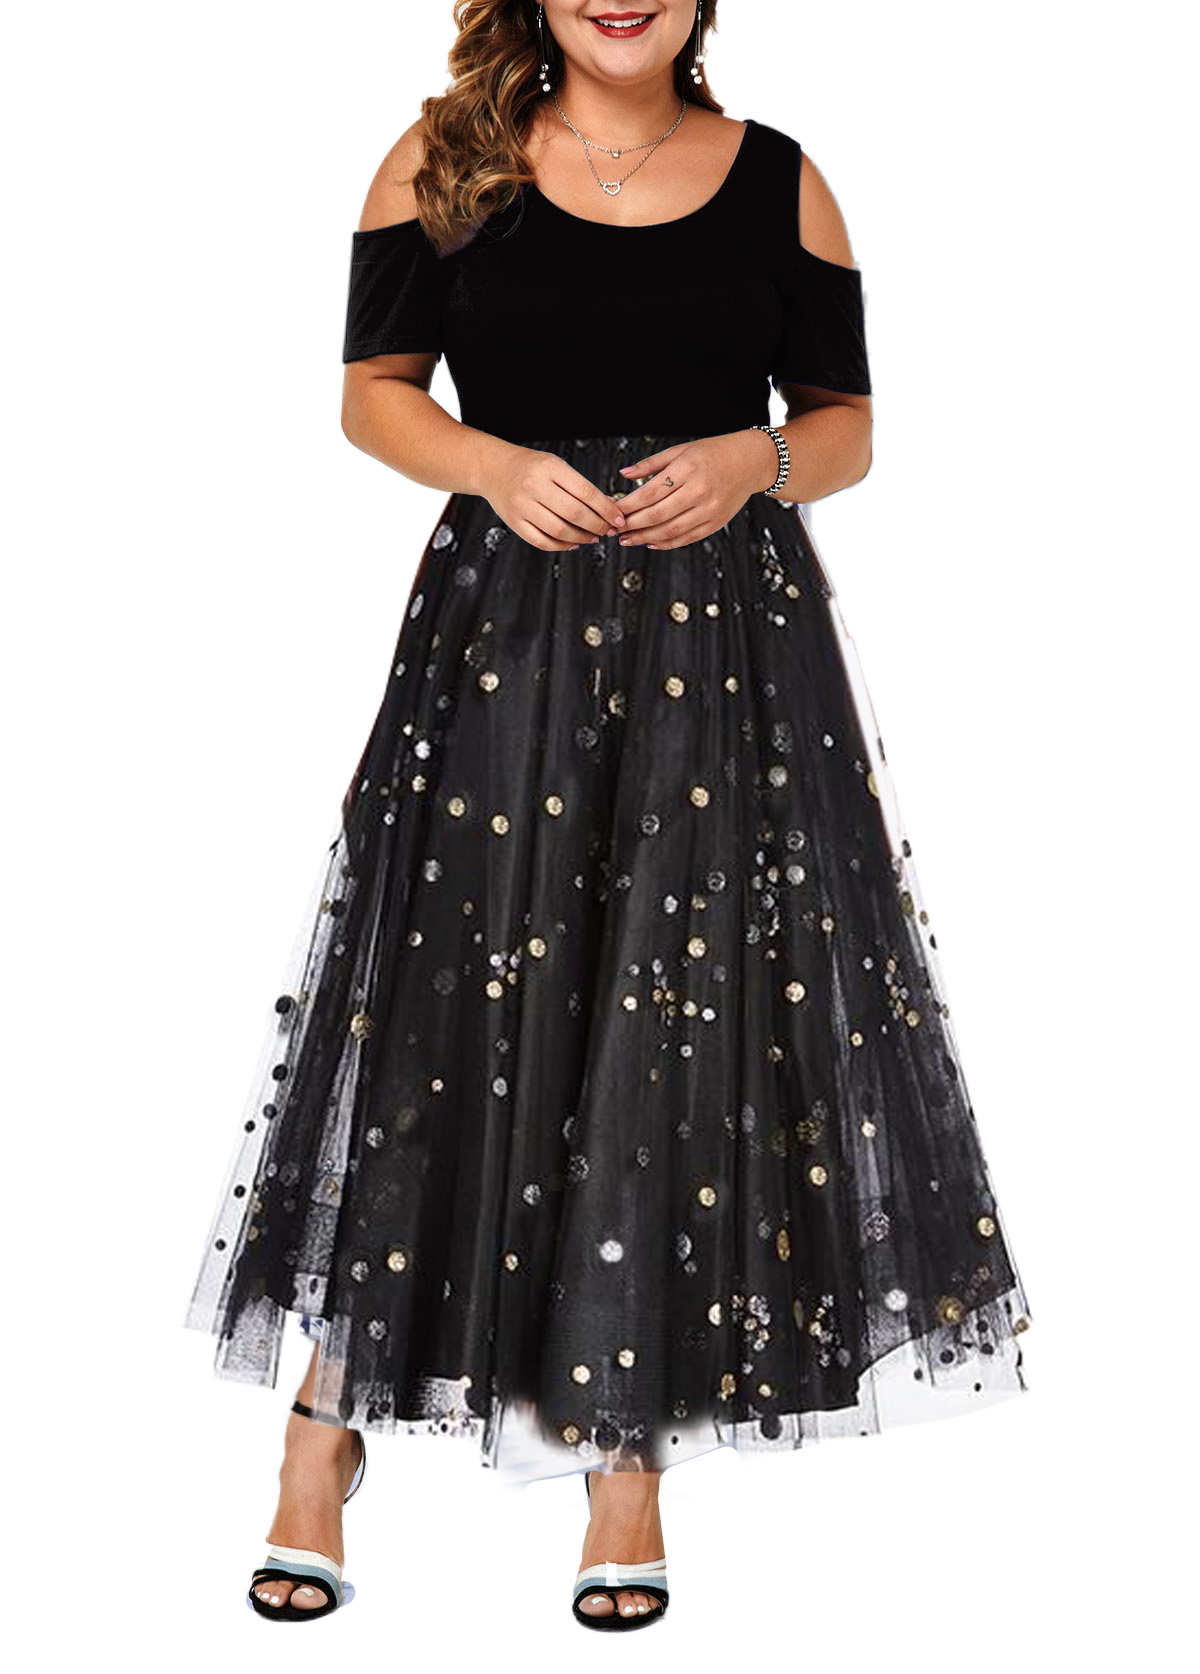 Mesh Panel Sequin Embellished Plus Size Dress